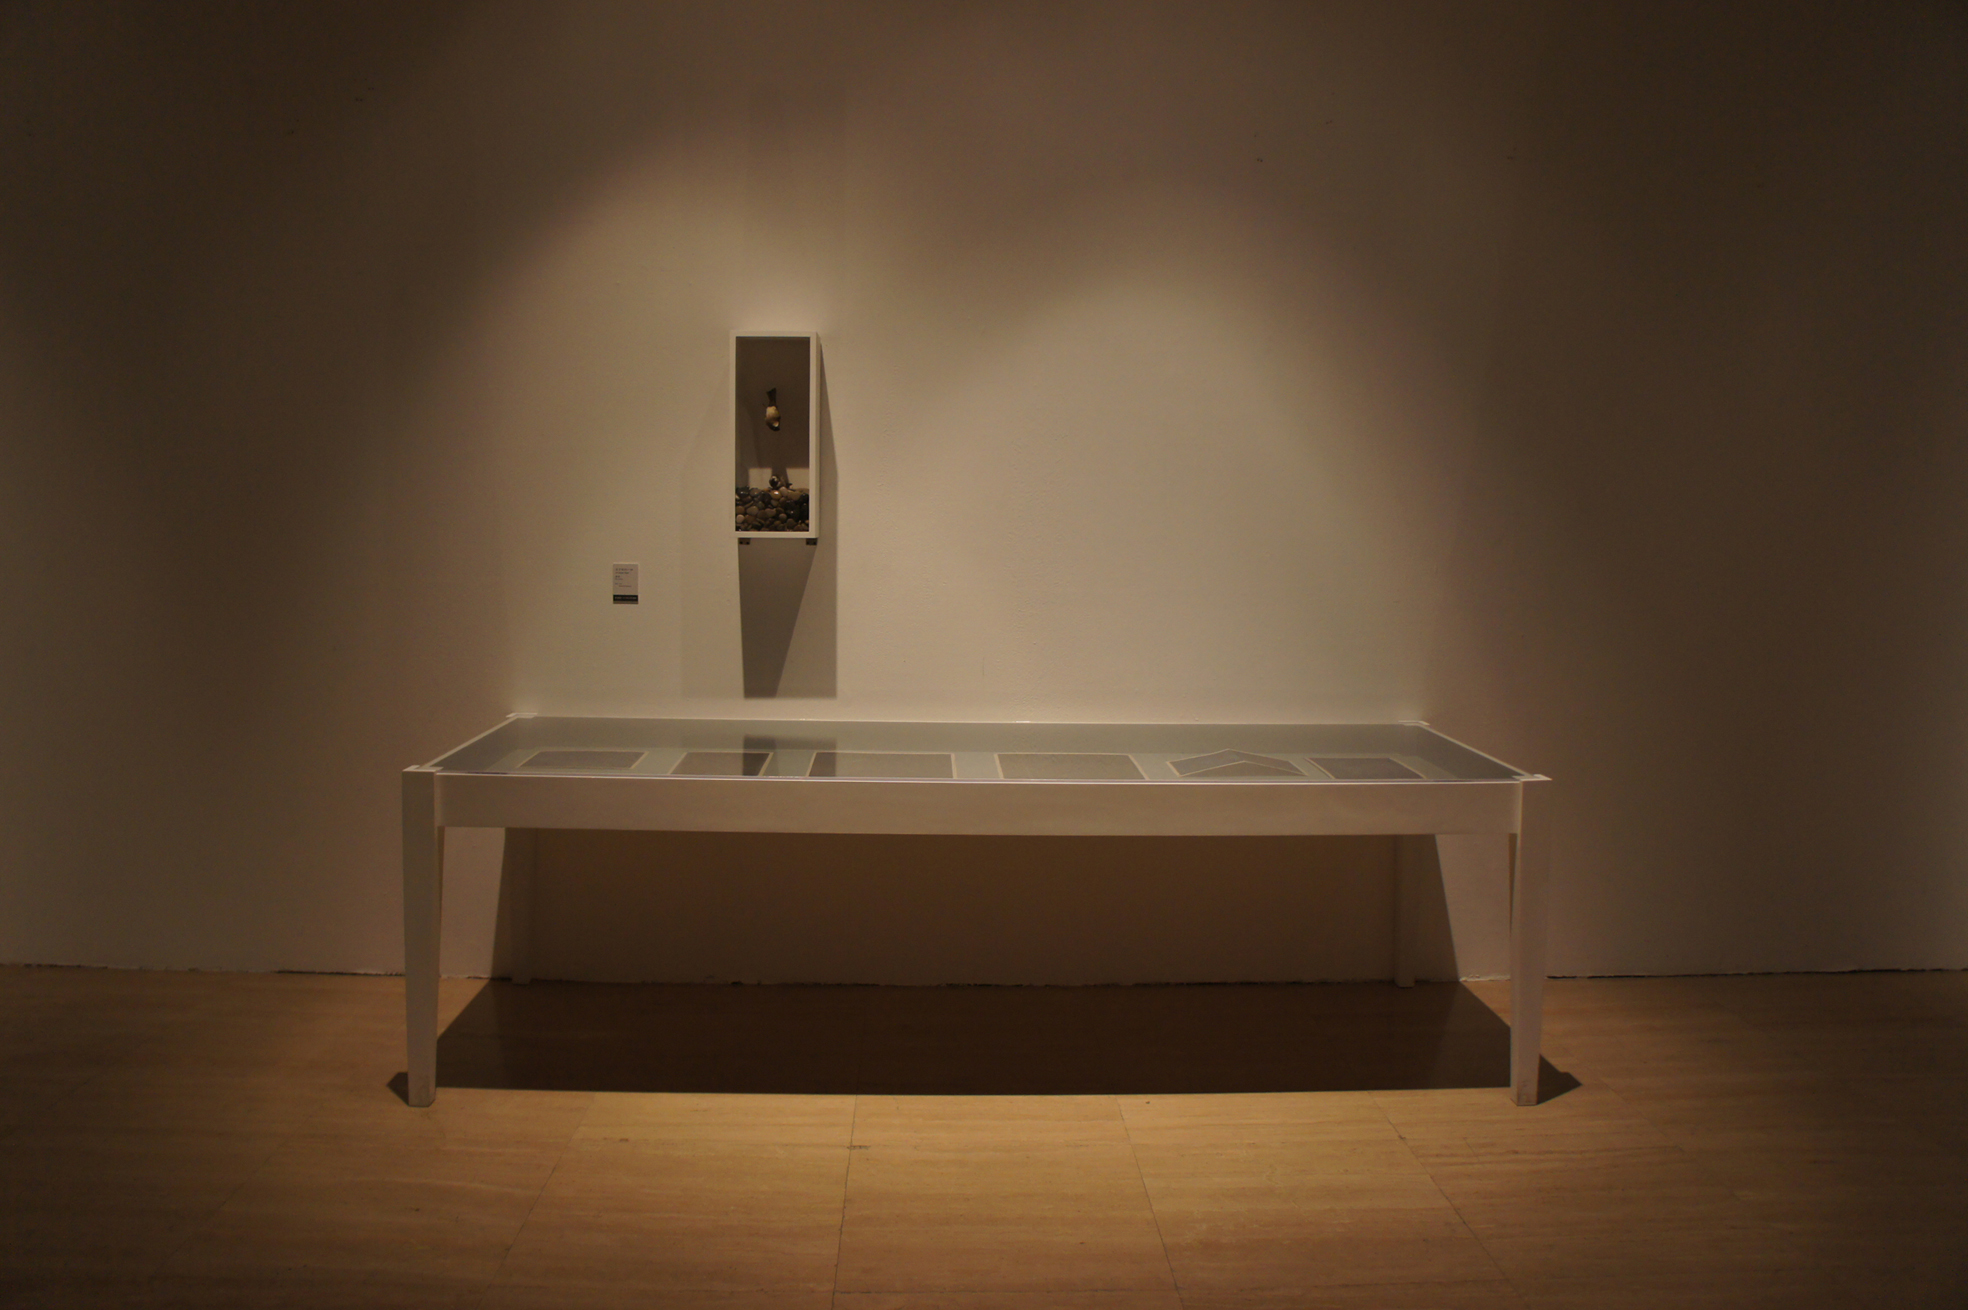 Hao Liang 郝量, Everything About Him 关于他的一切, 2012 (Installation View 展示效果图)